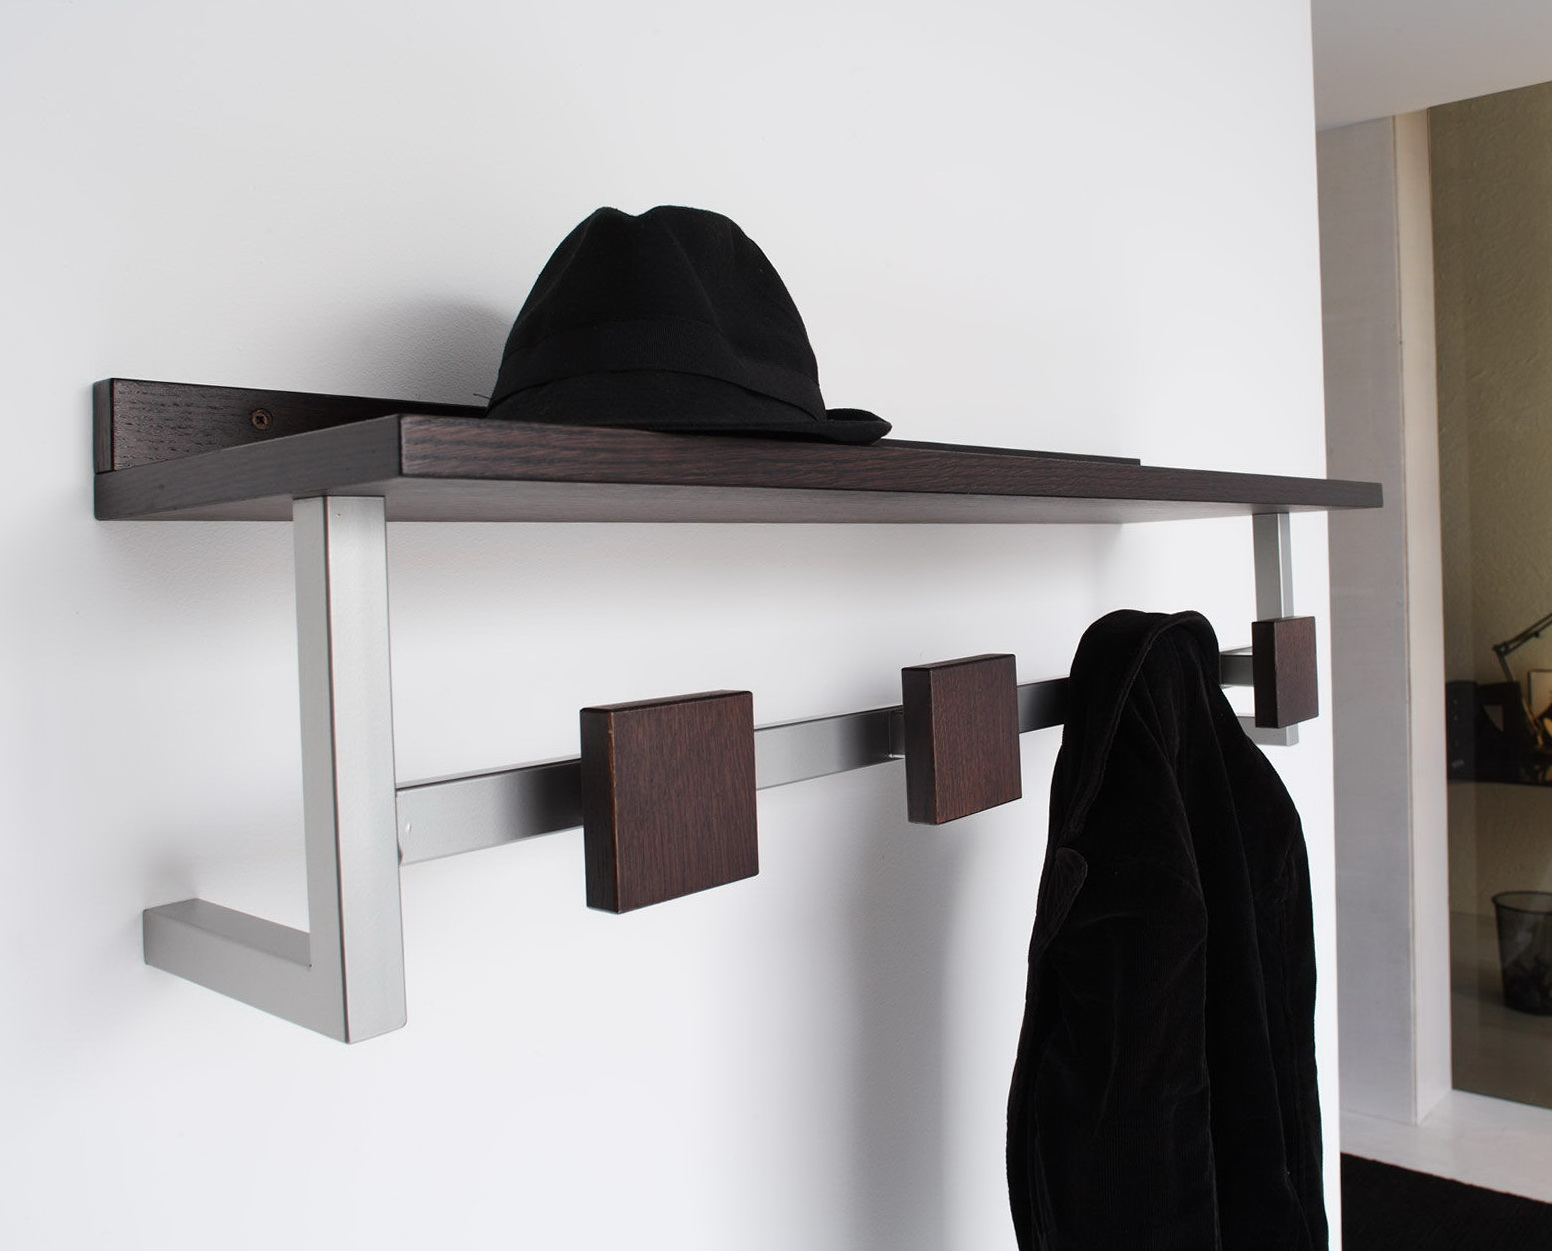 Ikea Wall Shelf With Hooks